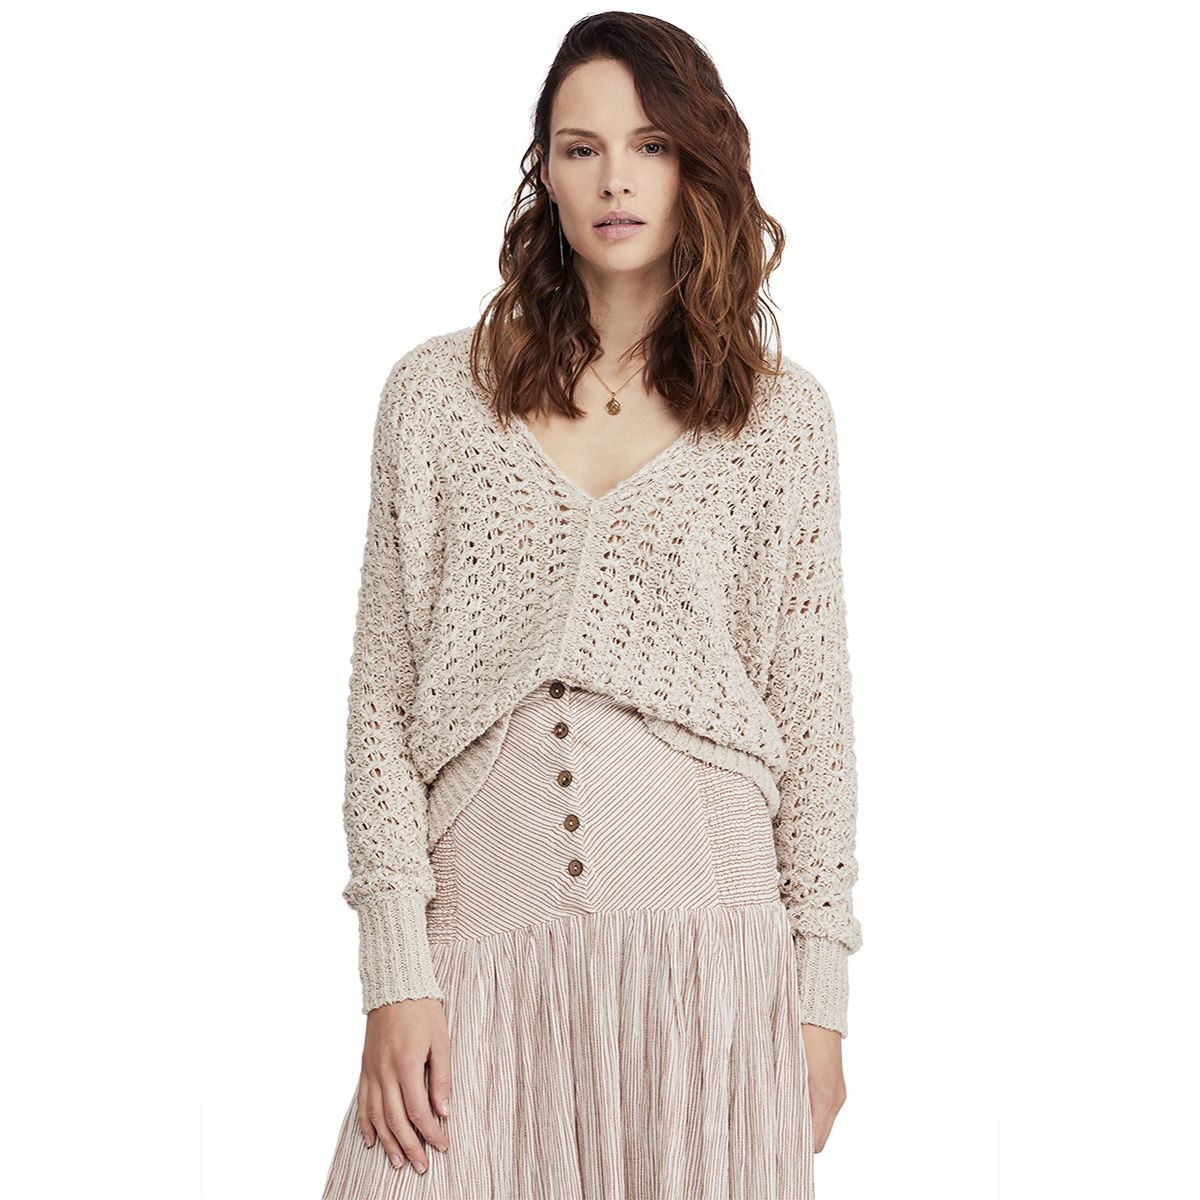 562accd1b6 Free People Clothing - Womens Apparel - Macy s